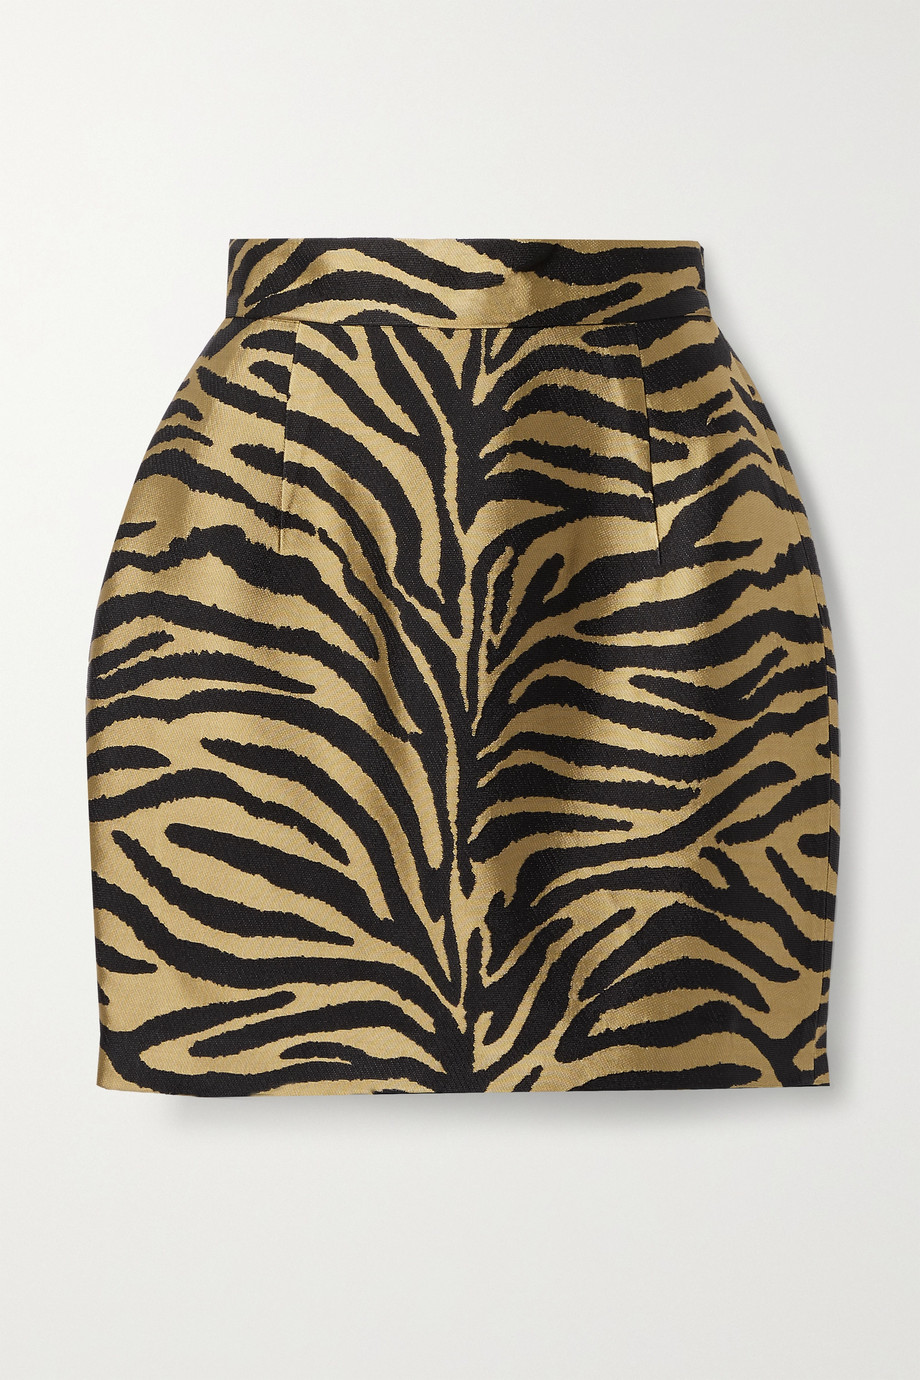 KHAITE Eiko metallic zebra-jacquard mini skirt